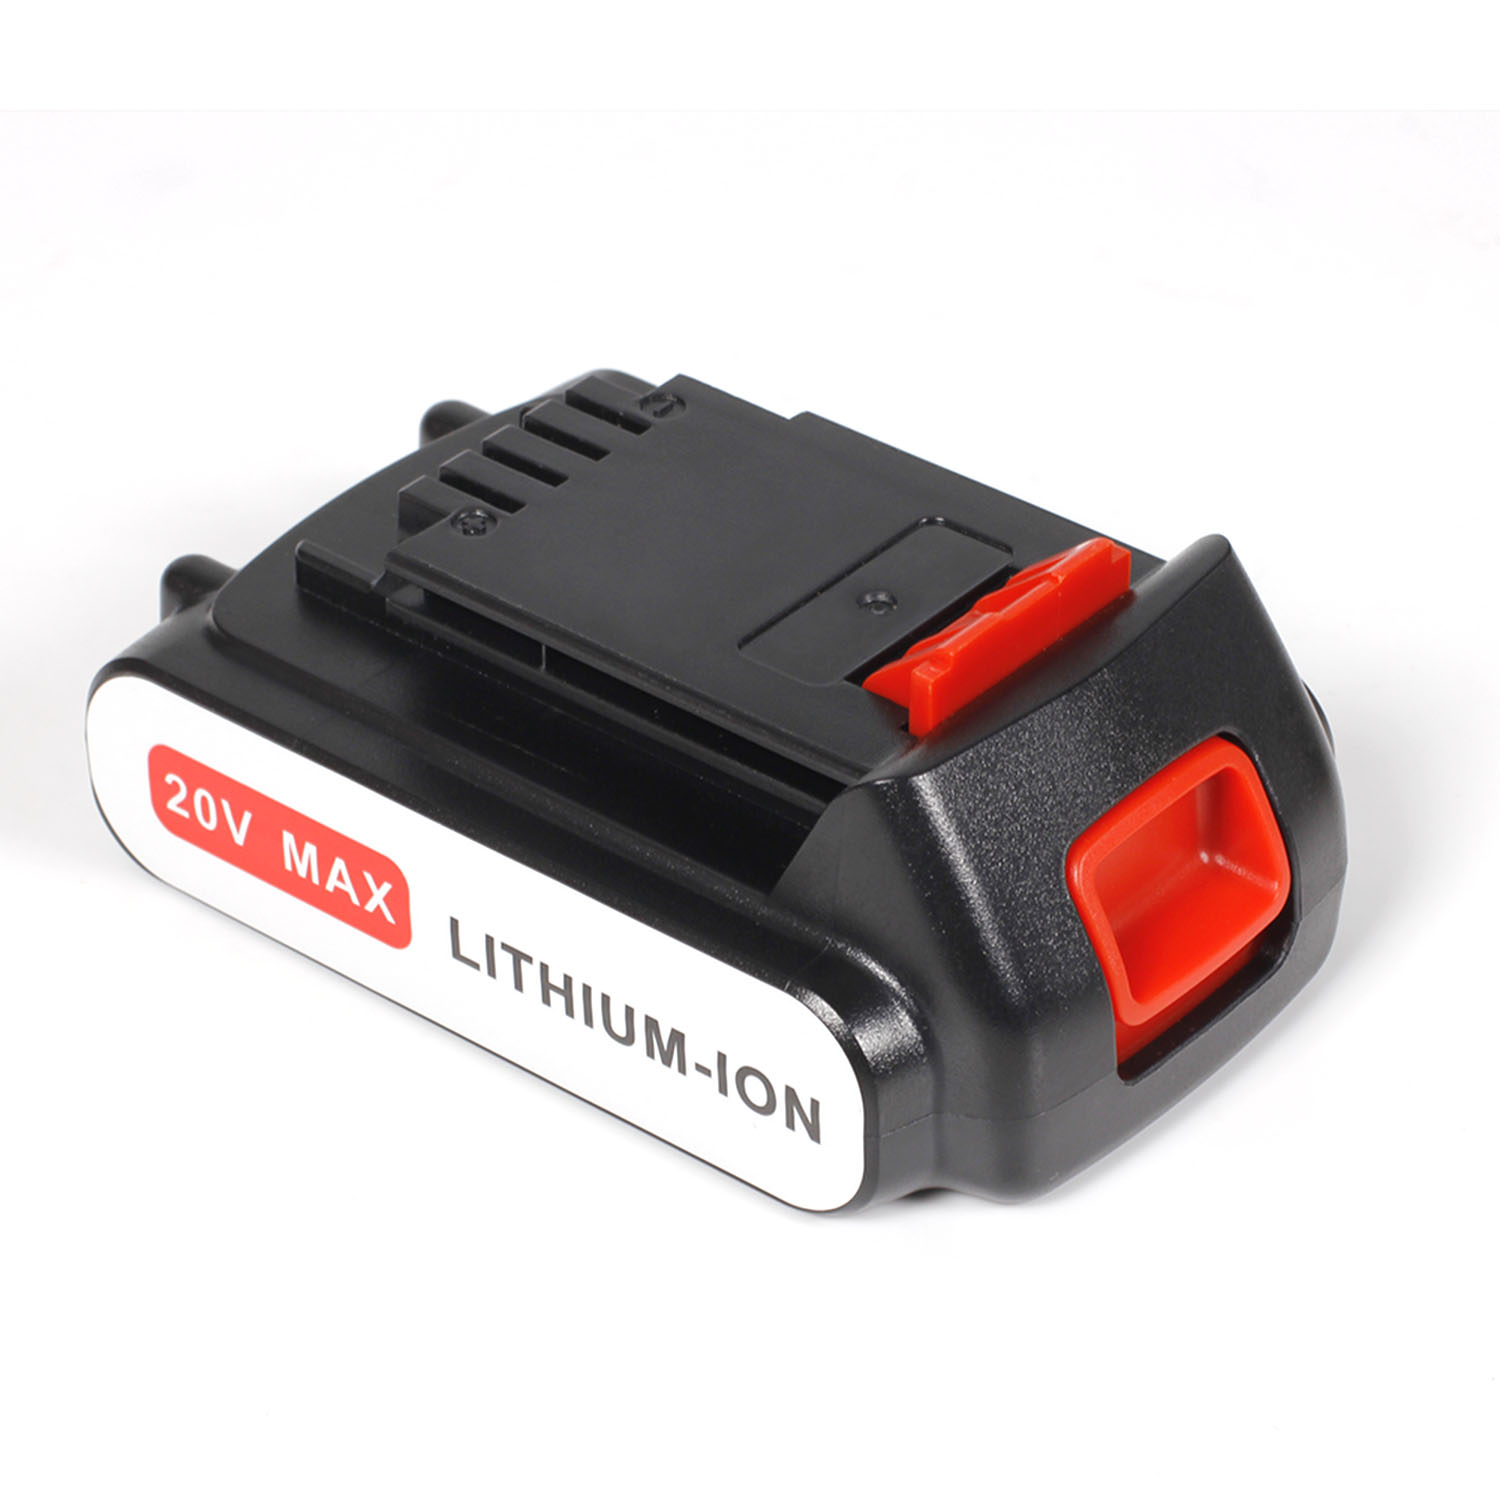 20V Lithium-ion Replacement Tool Battery For Black & Decker LB20 LBXR20 CHH2220 ASL186K LSW20 h